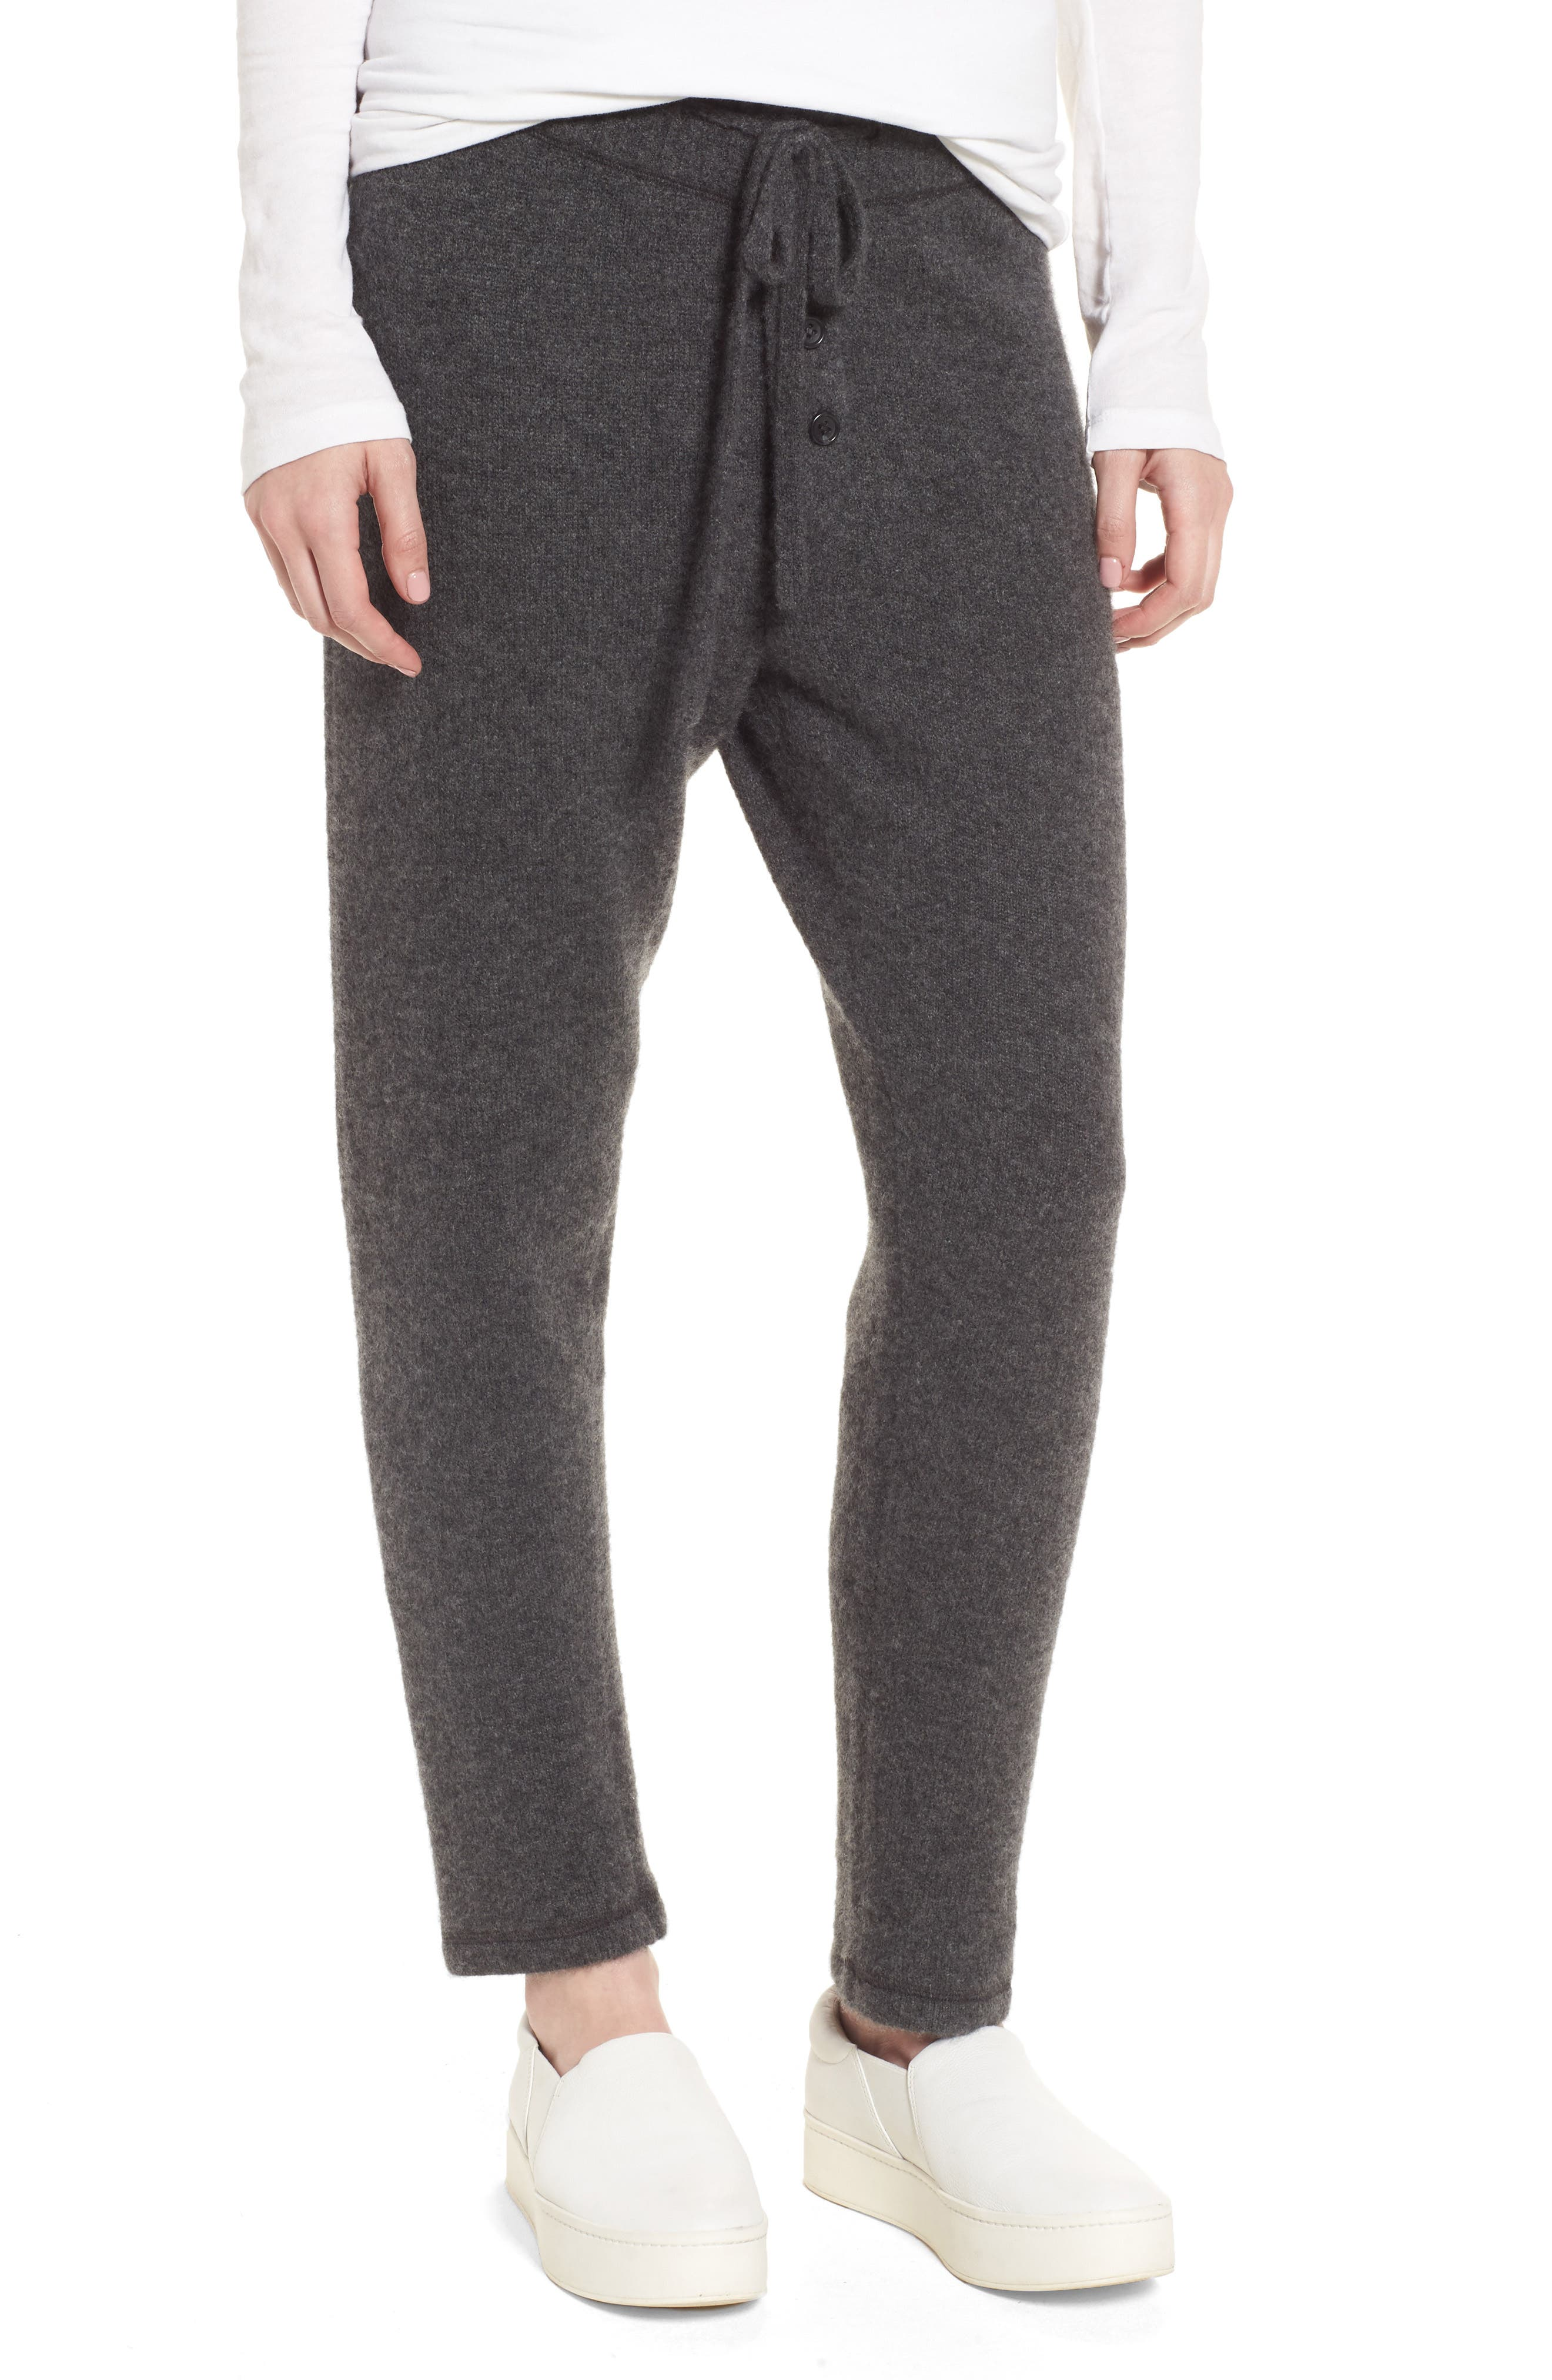 Brushed Cashmere Sweatpants,                         Main,                         color, Charcoal